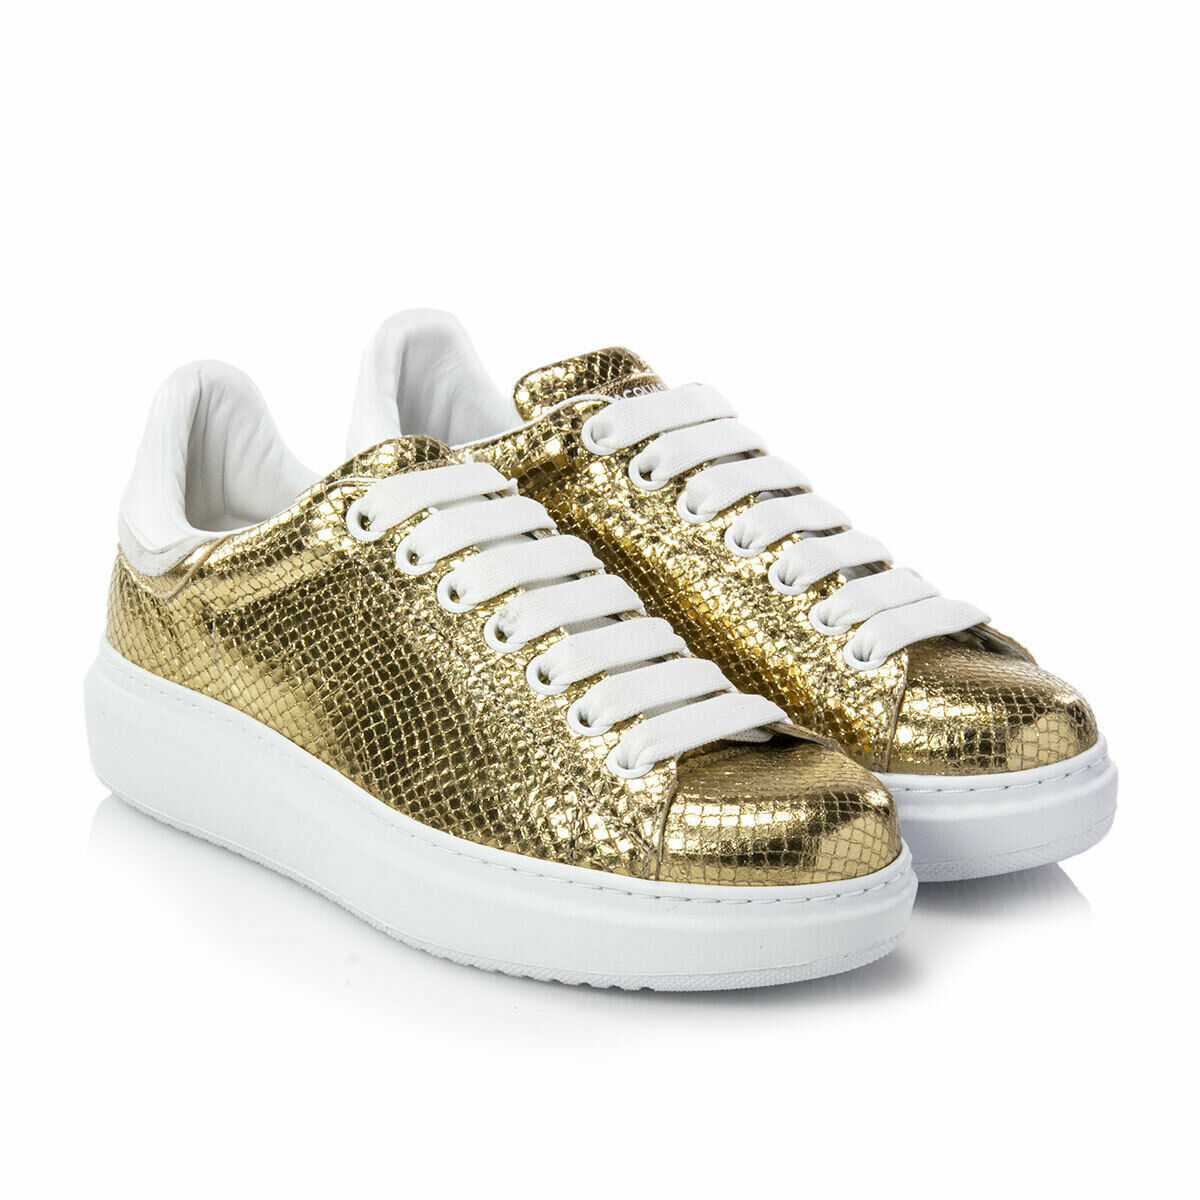 SCARPE SNEAKERS DONNA D'ACQUASPARTA ORIGINALE COURT HIGH PELLE P/E 2019 NUOVO